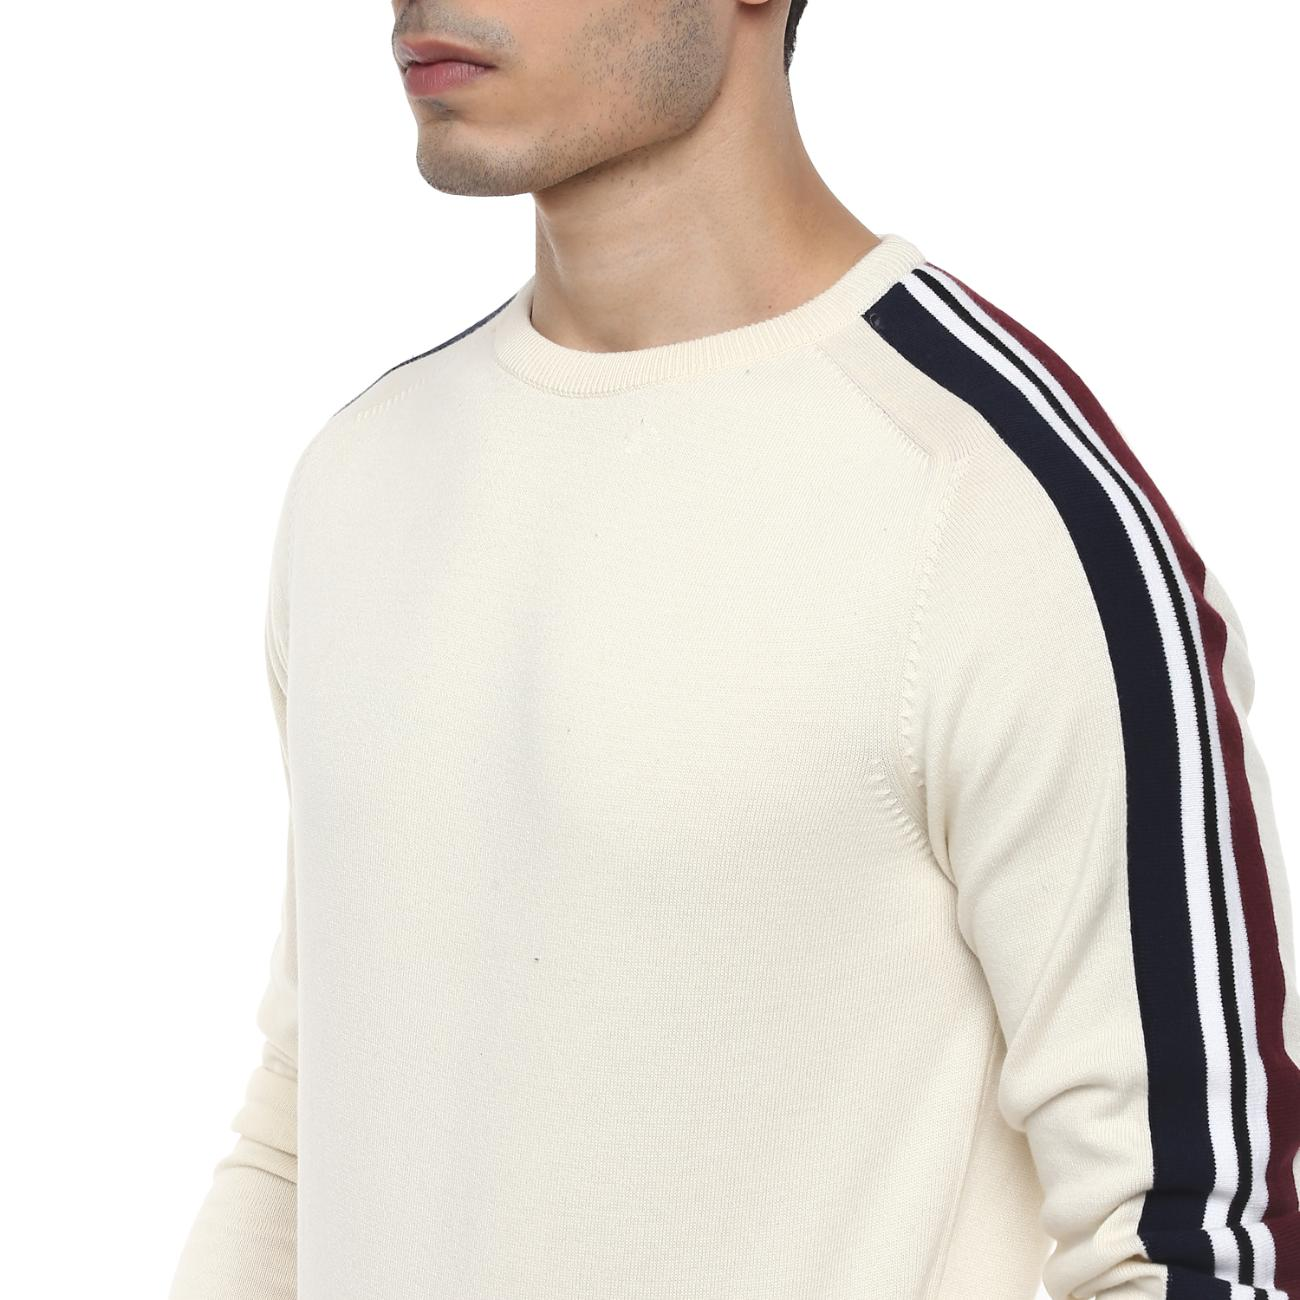 Round Neck Casual Sweater for Men Online